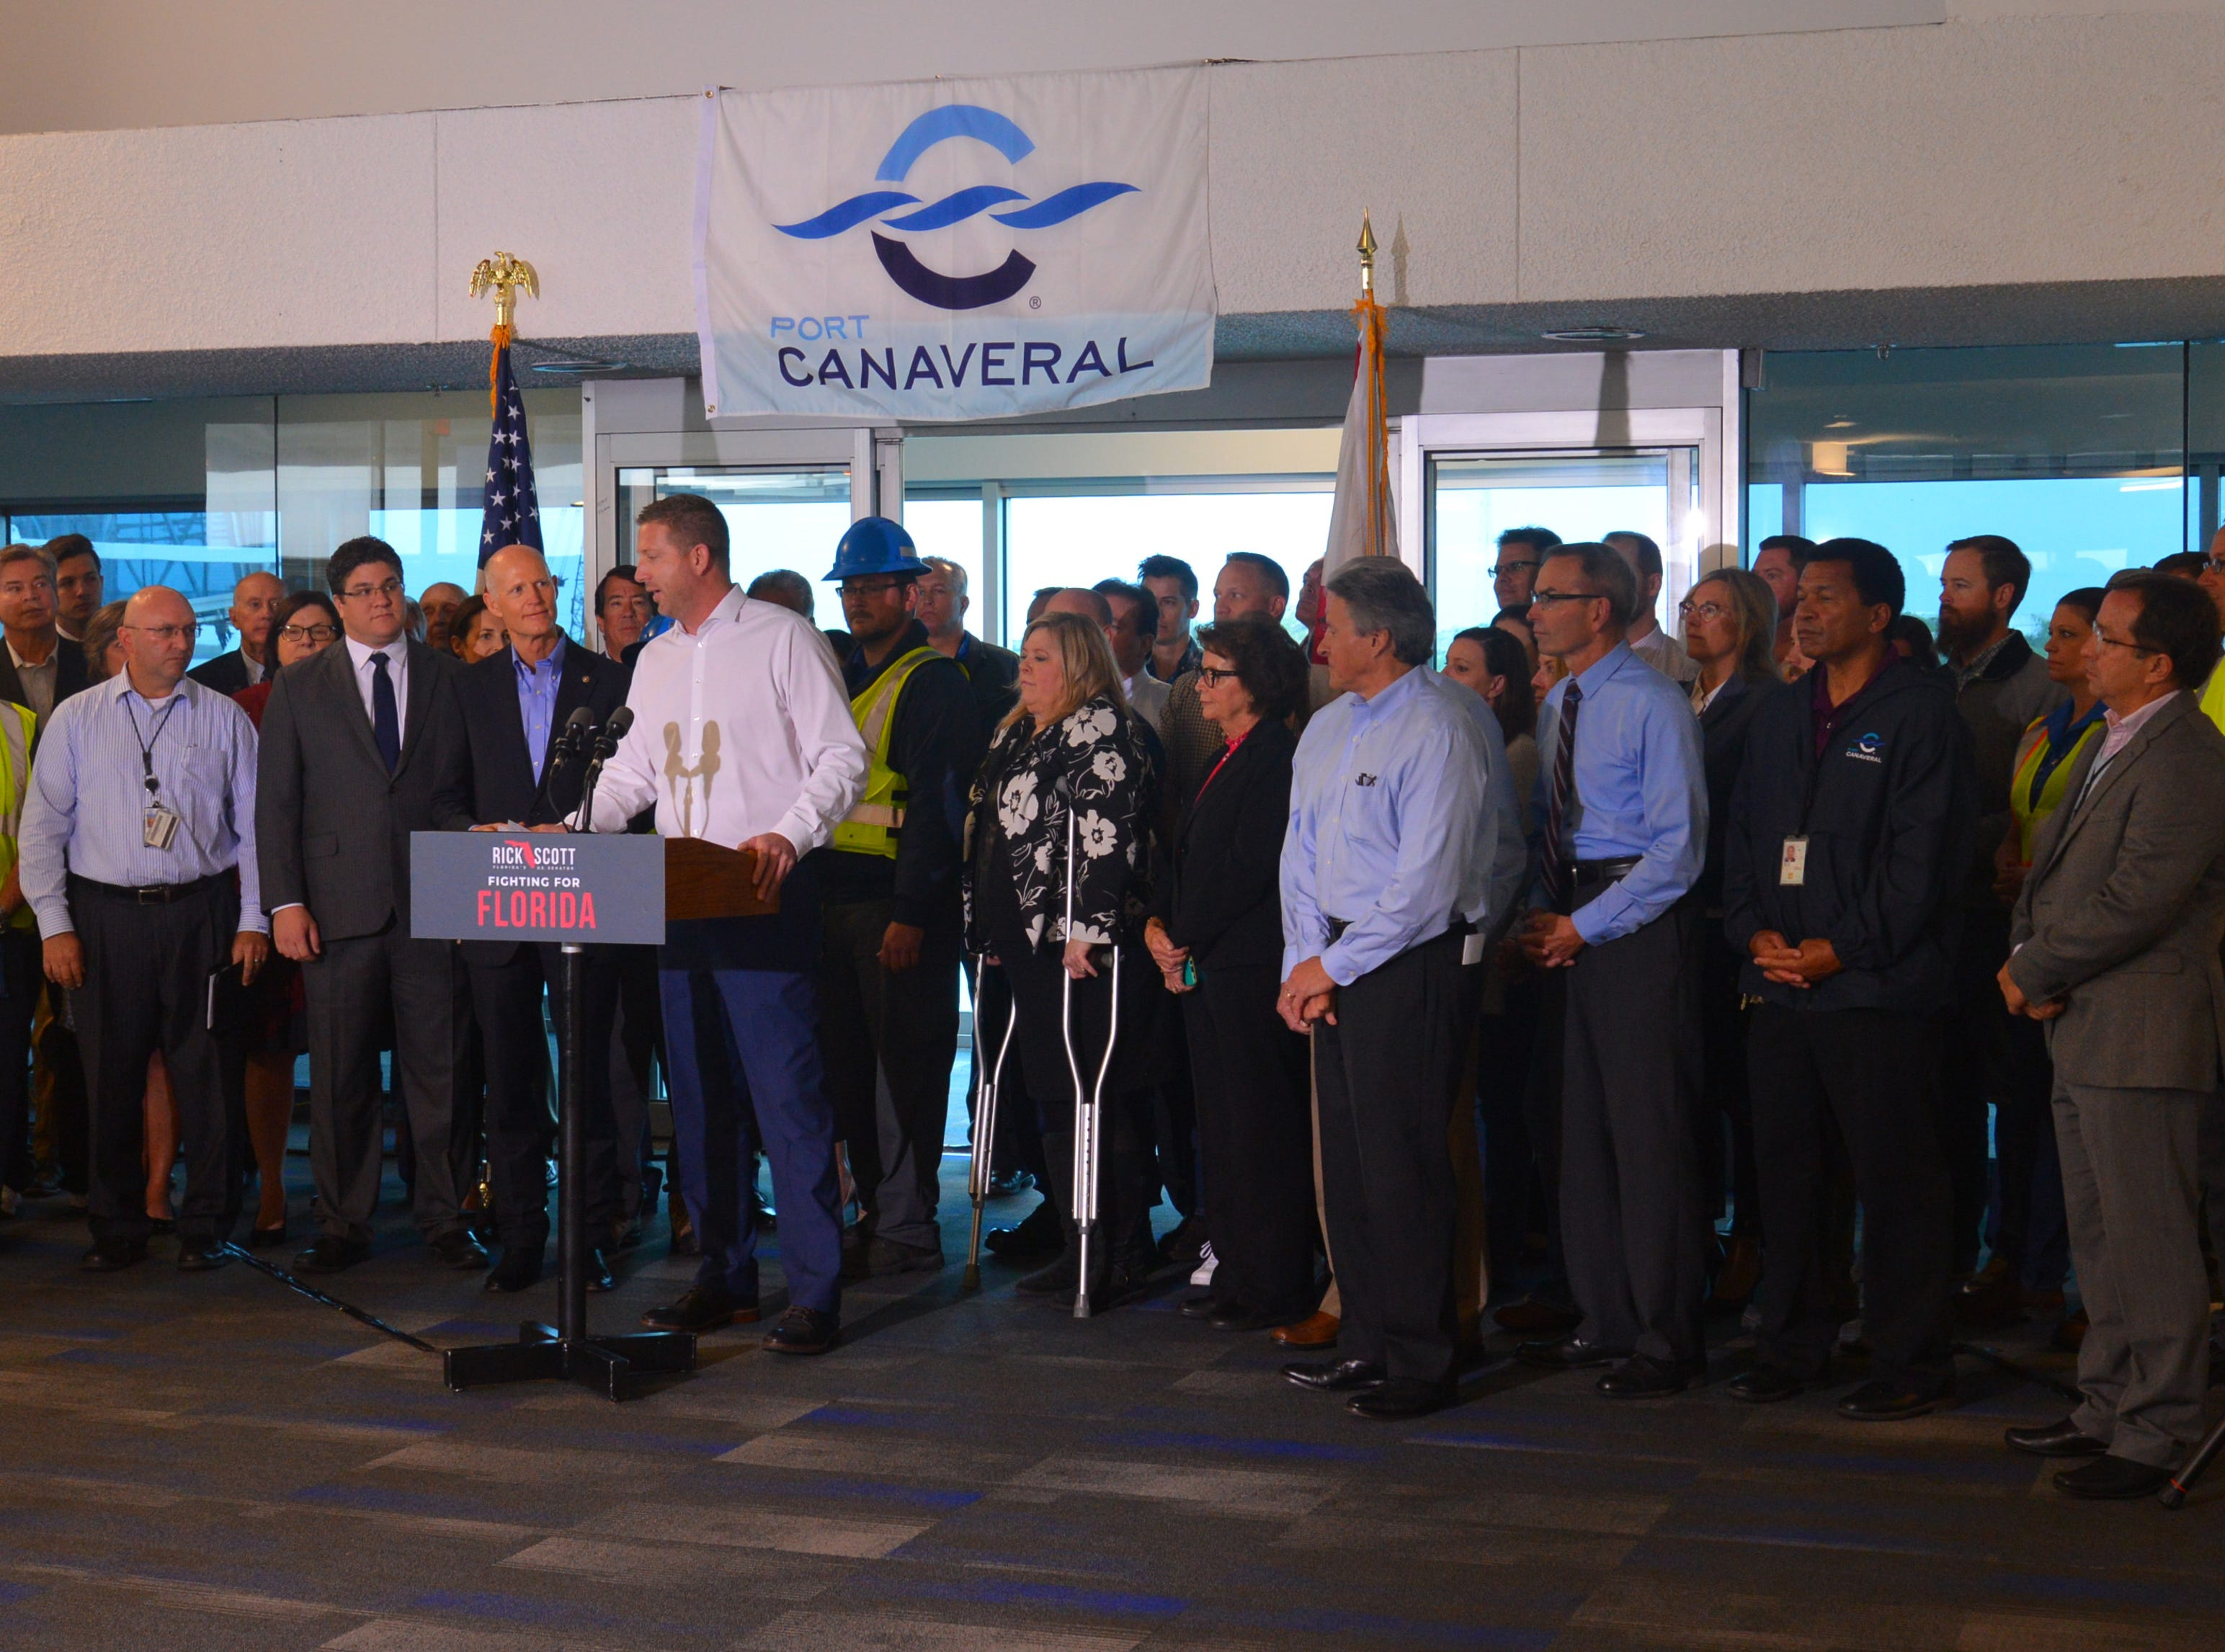 Sen. Rick Scott held a press conference at Terminal 5 Tuesday morning at Port Canaveral, pledging to work for $140 million in the budget for Florida ports. POrt Commissioner Micah Loyd introduced the senator.